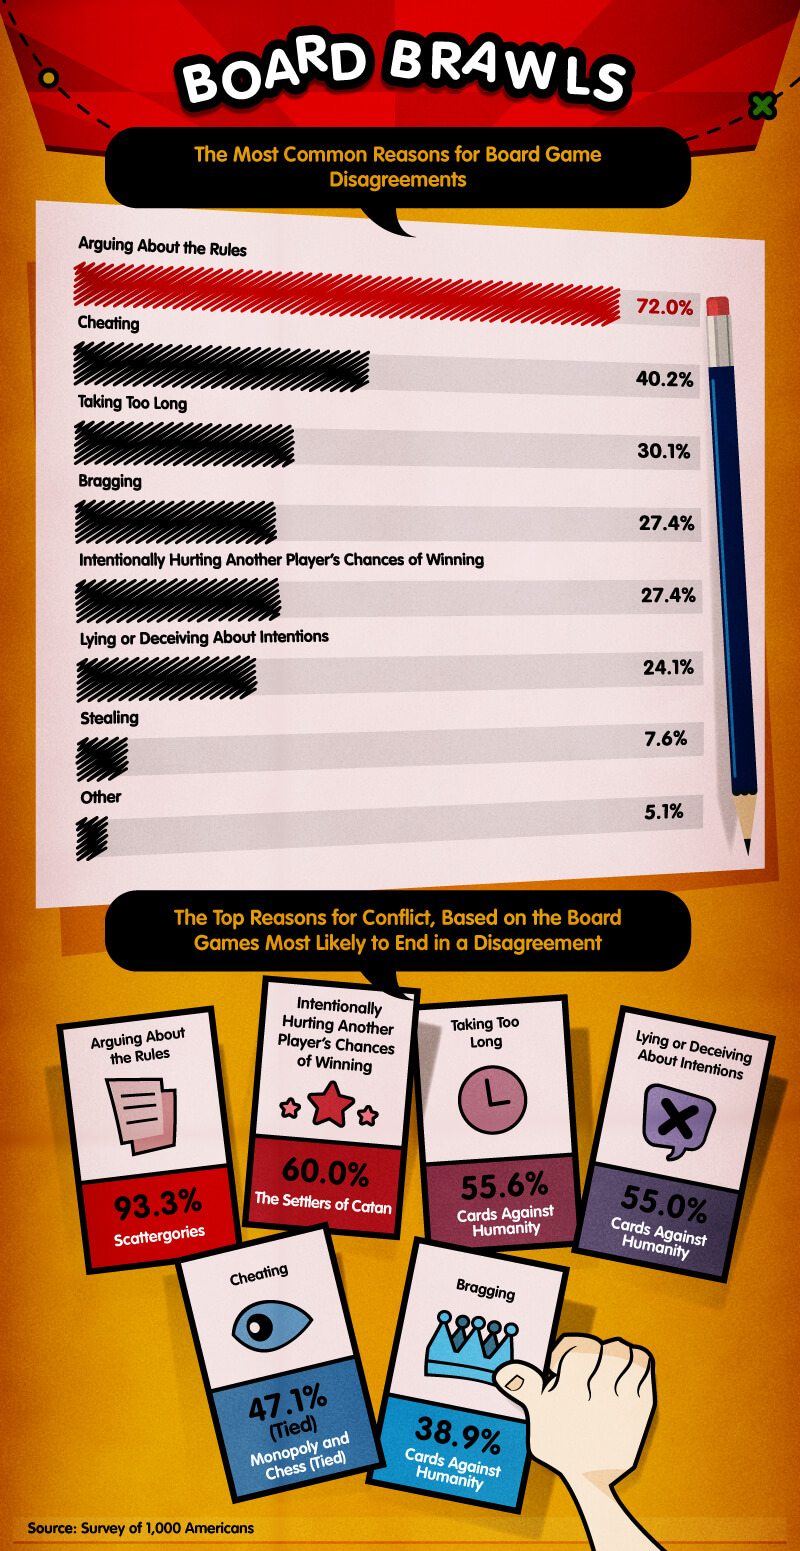 Most common reasons for board game disagreements